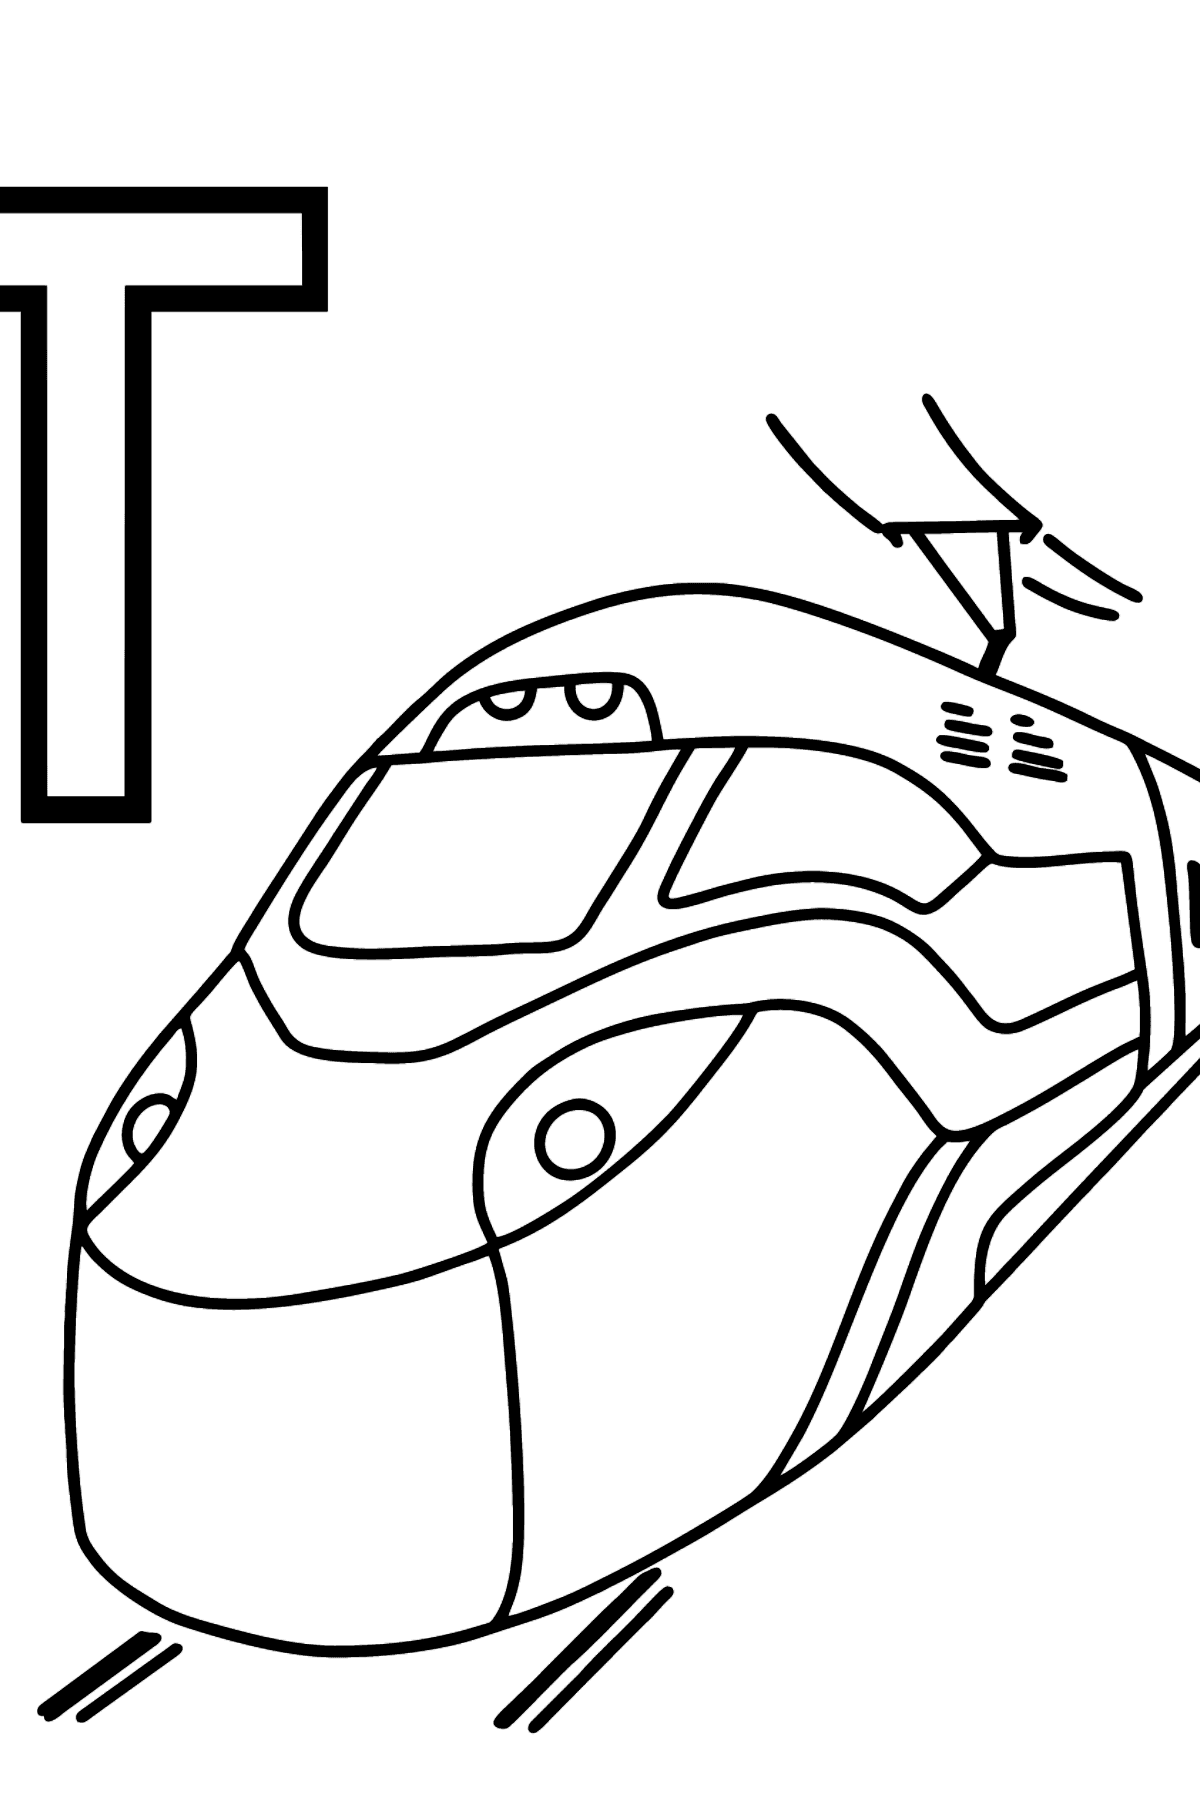 Spanish Letter T coloring pages - TREN - Coloring Pages for Kids